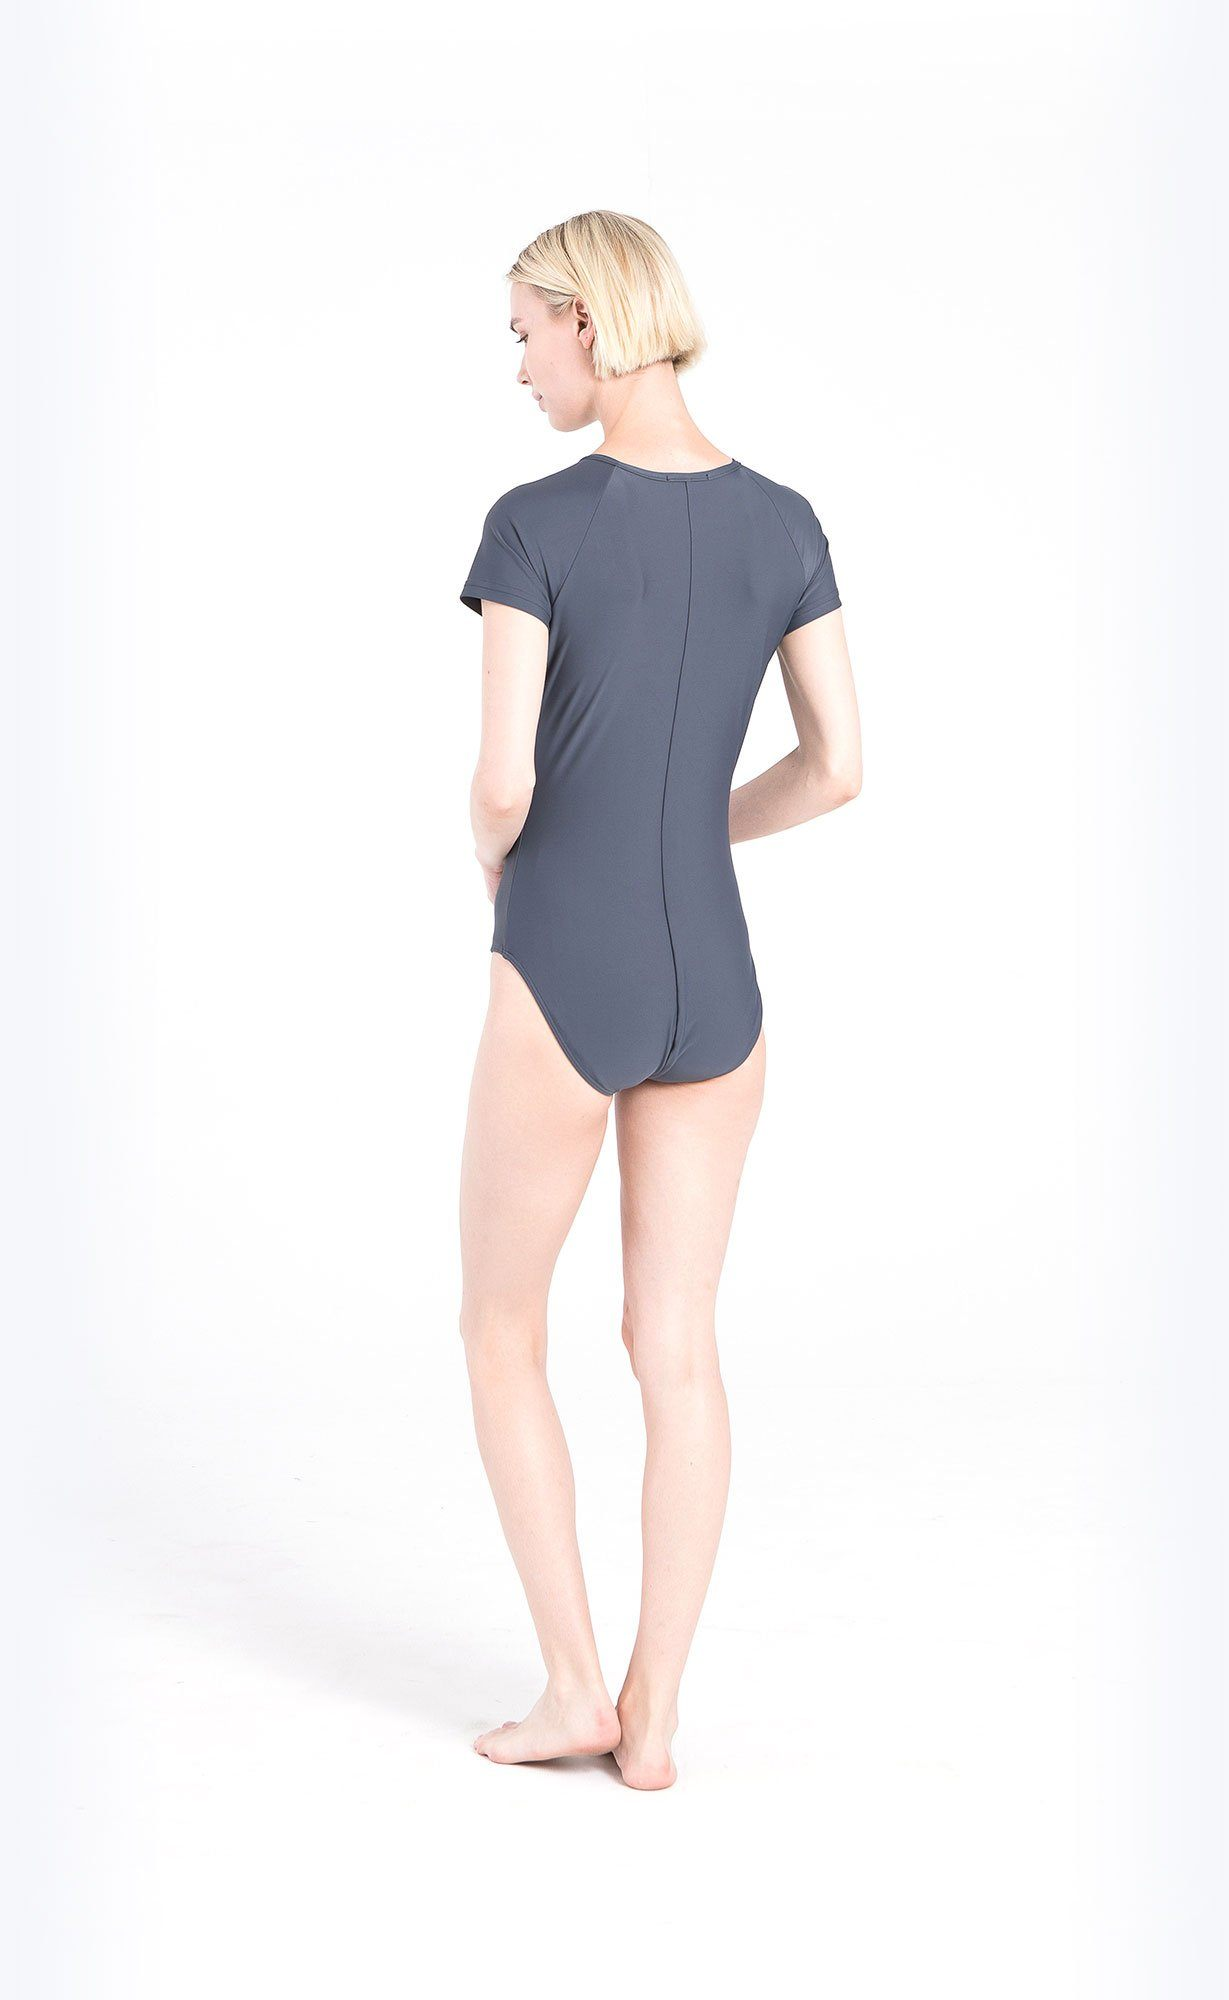 Short-Sleeved Swimsuit - Grey